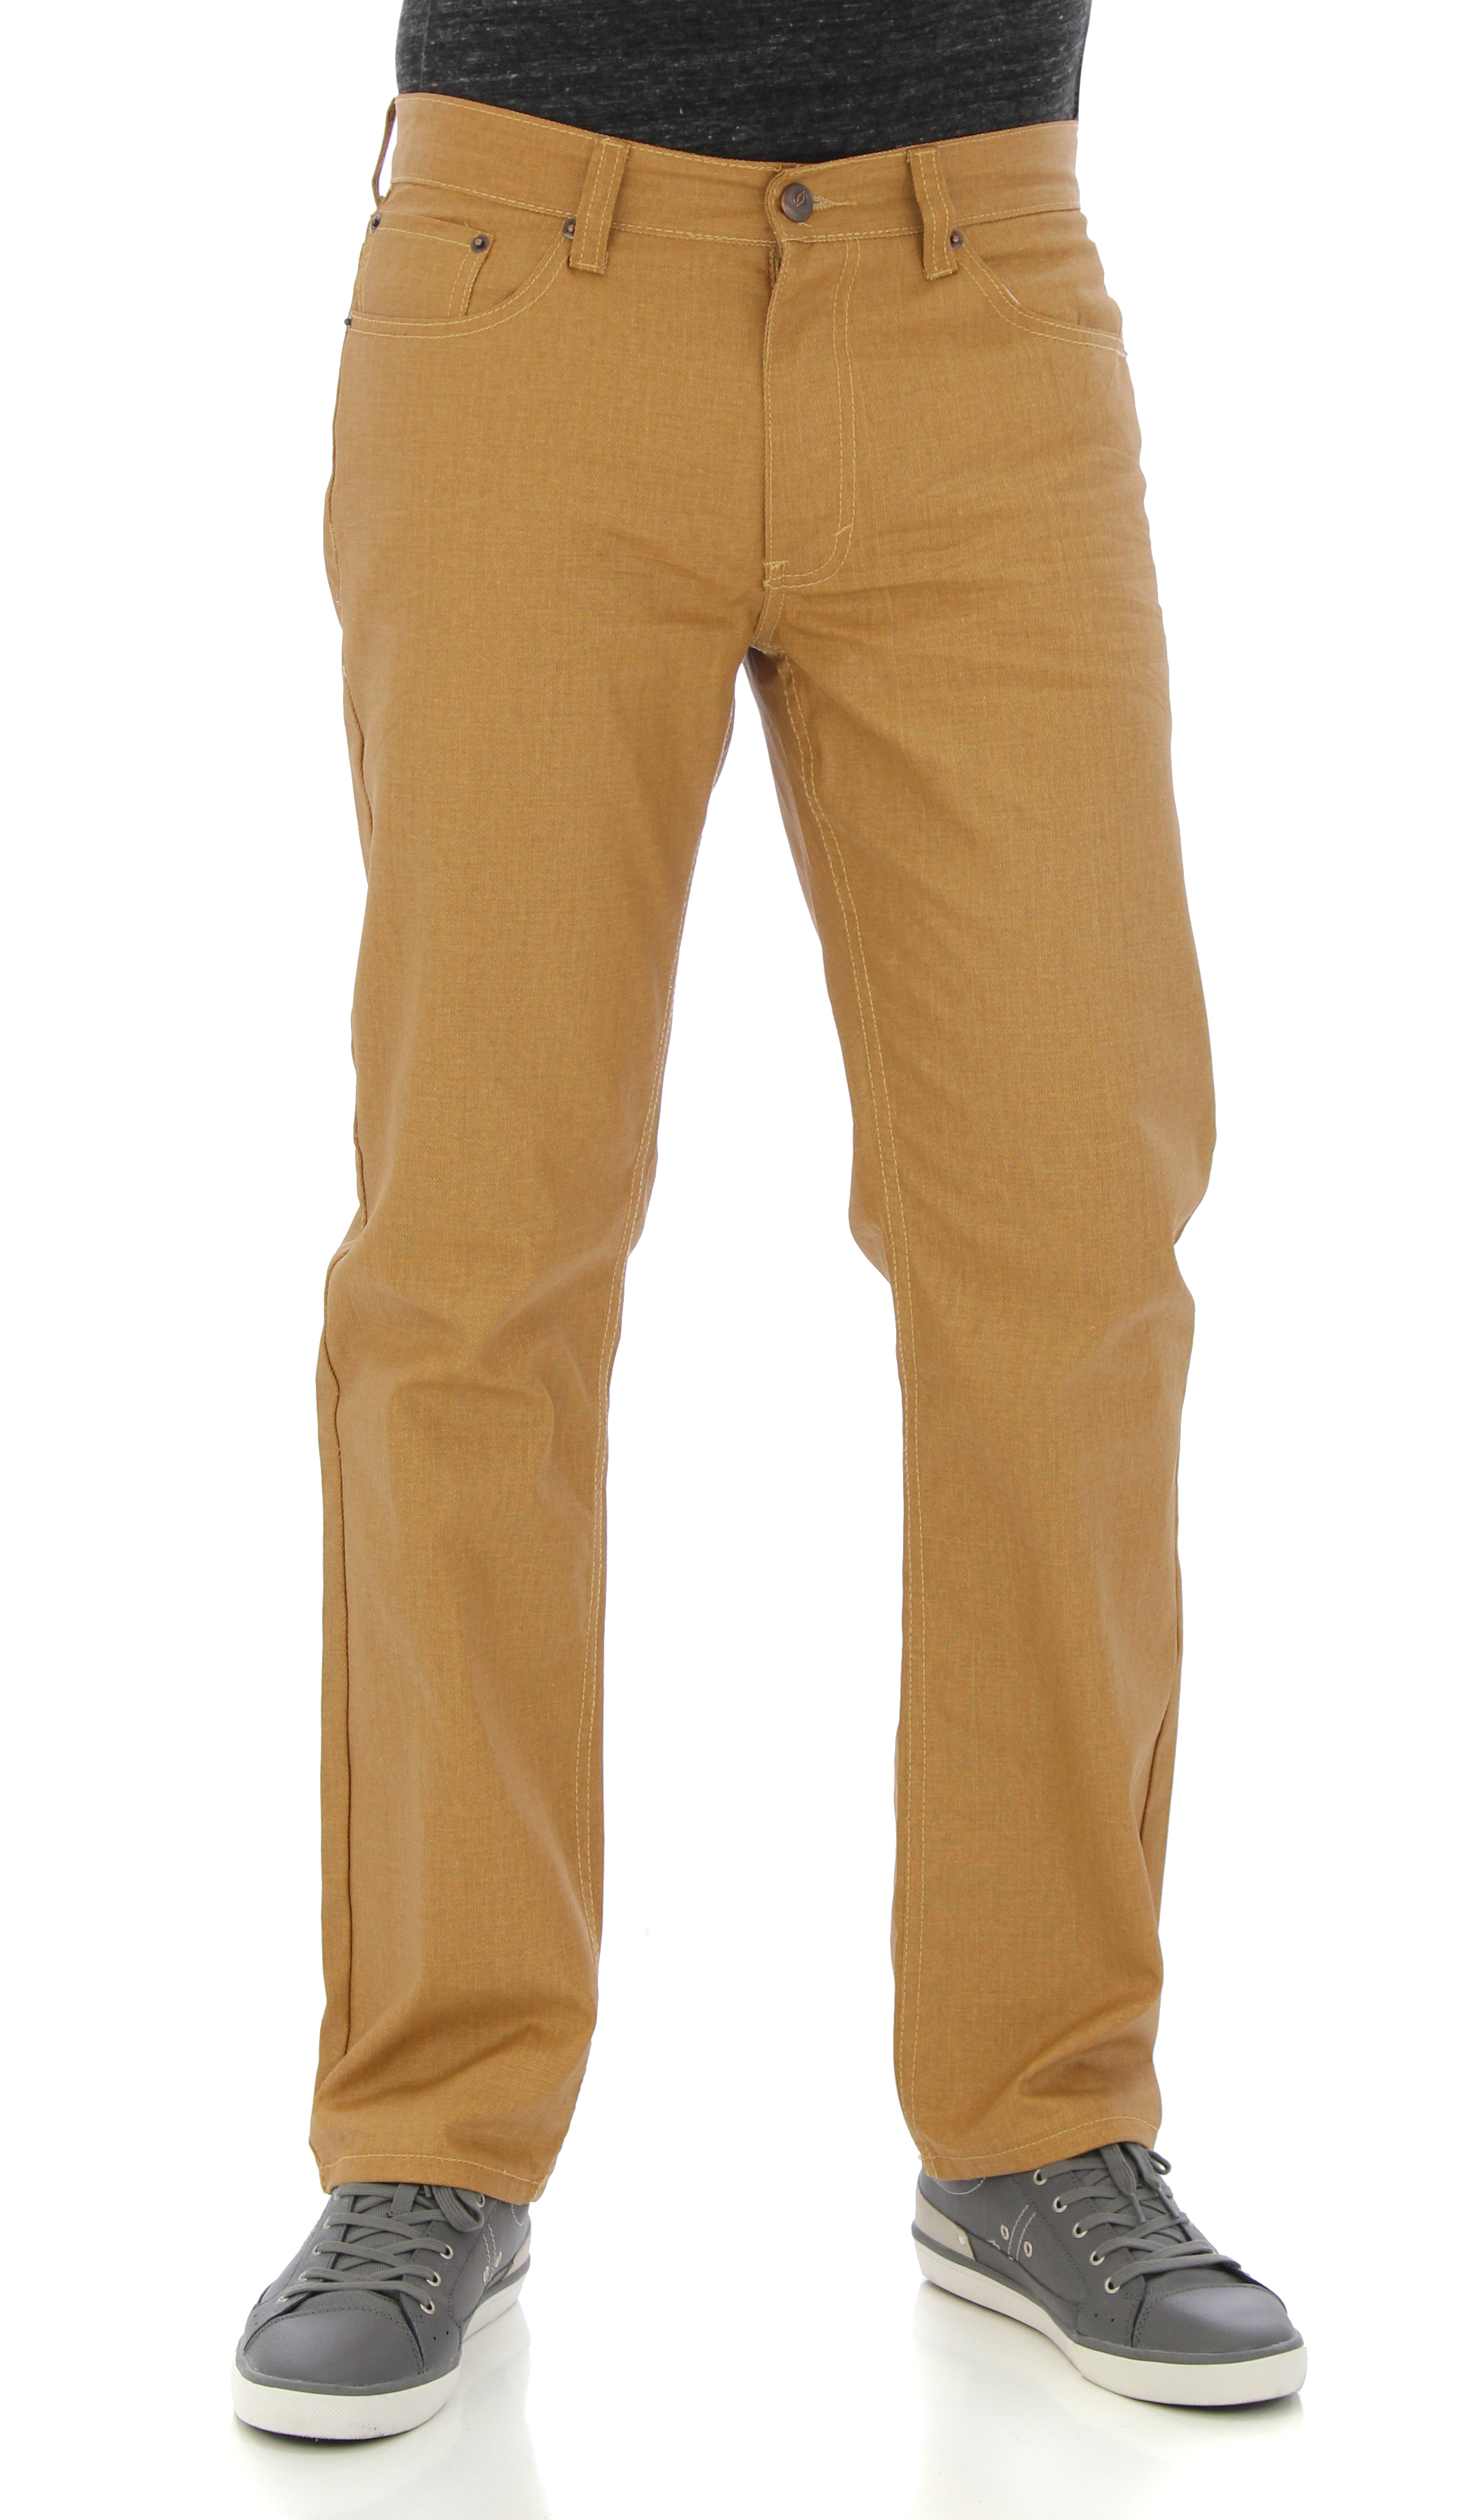 Find great deals on eBay for waxed denim jeans. Shop with confidence.